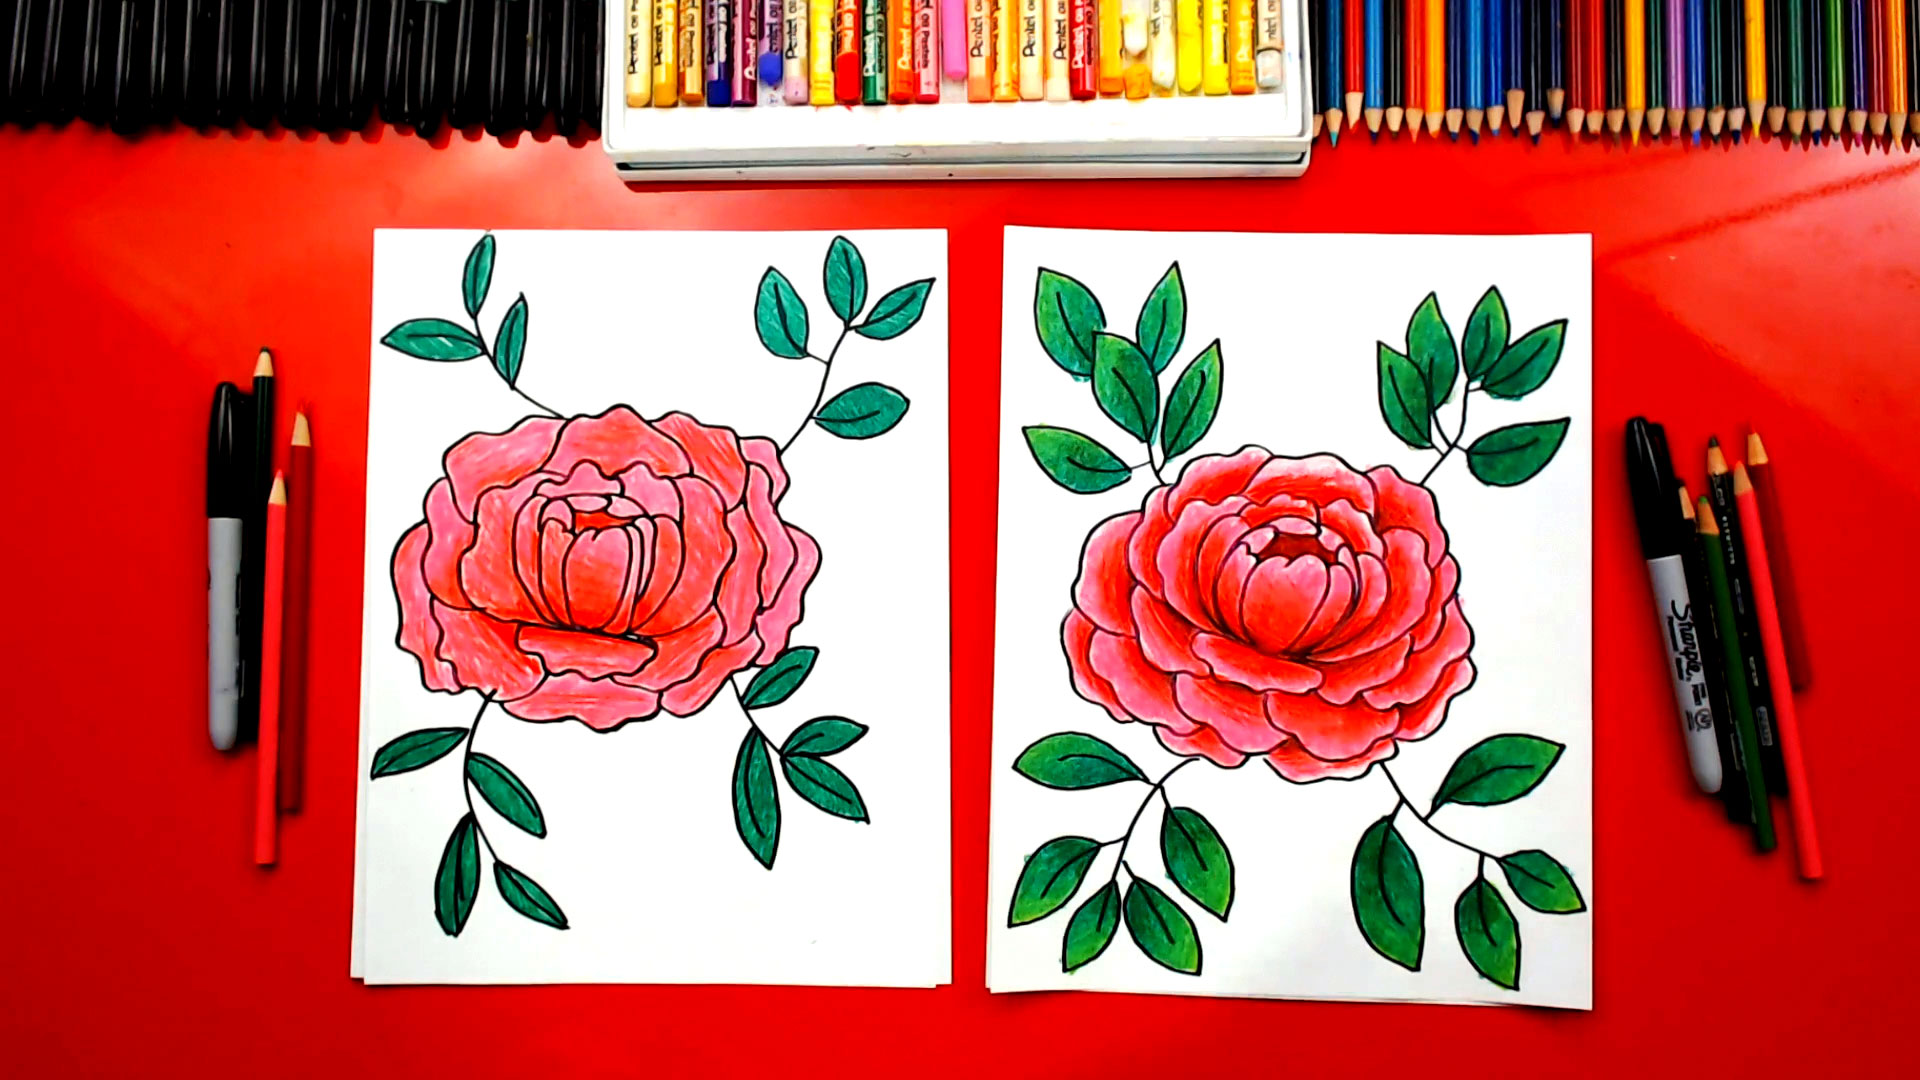 How To Draw A Peony Flower - Art For Kids Hub